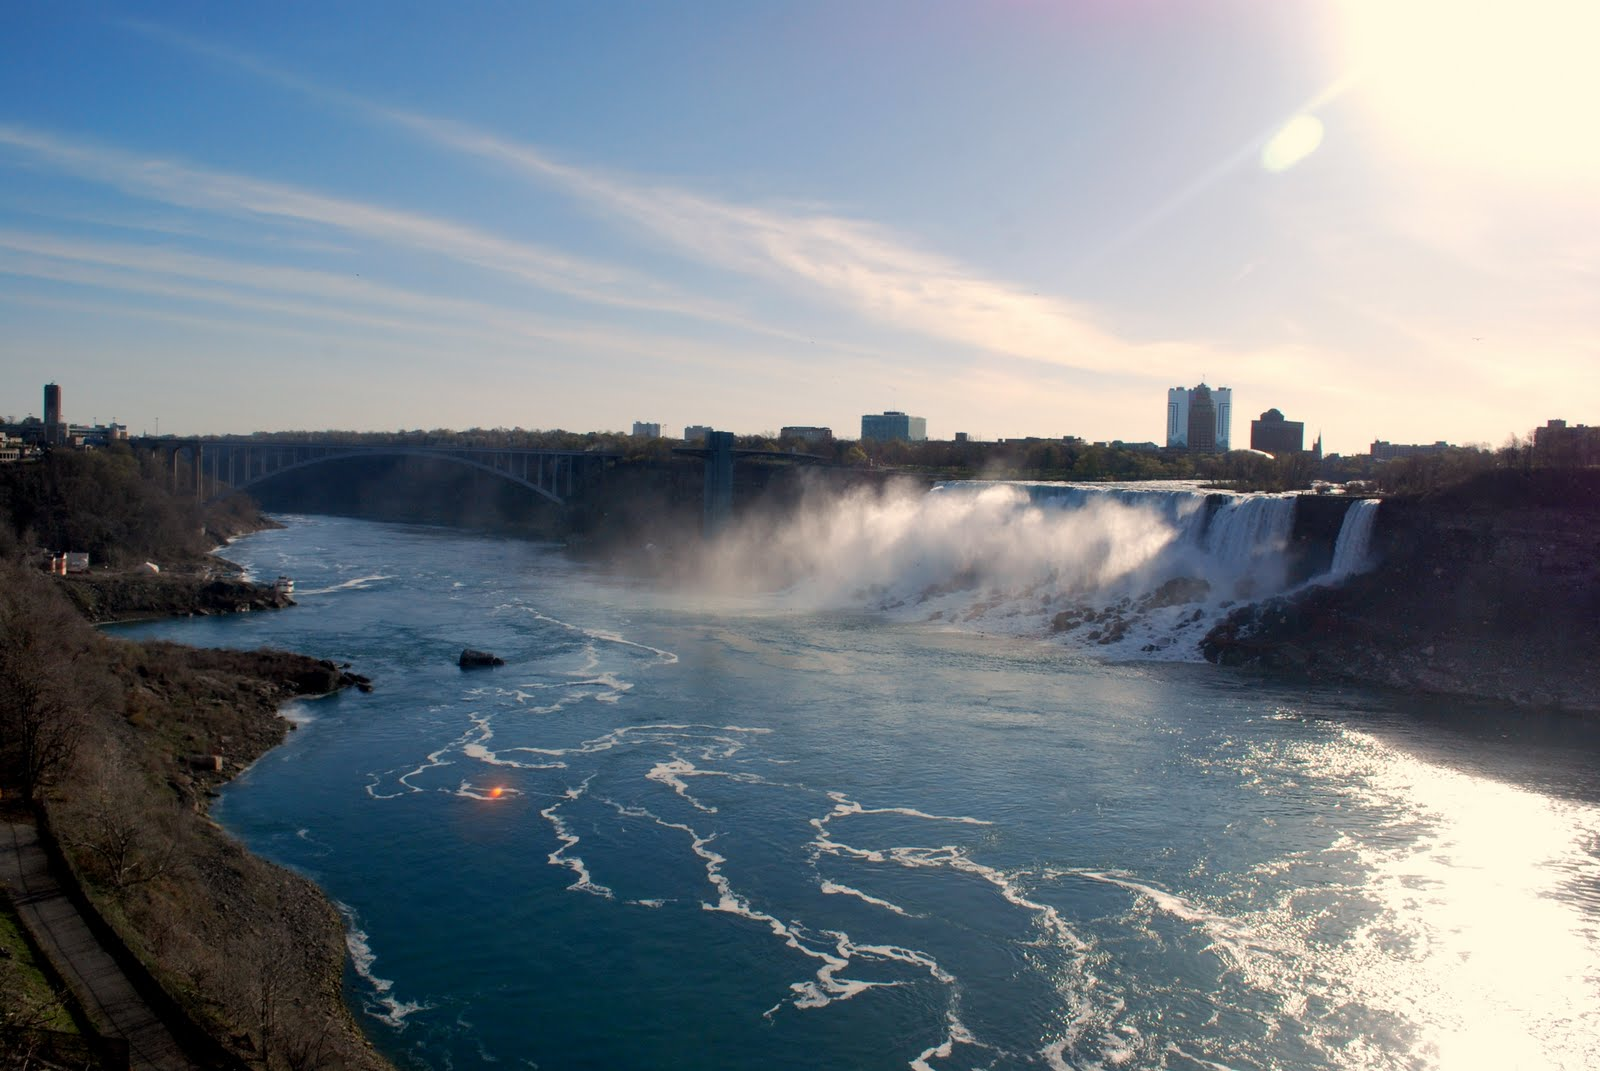 an introduction to the niagara falls This section presents 3 bike tours, as well as an introduction, to the niagara parks recreation trail these tours wend their way along country roads and give insight into different parts of niagara if you would like more information on bicycle and bike riding or other bike tours in niagara falls, contact the niagara freewheelers bicycle.